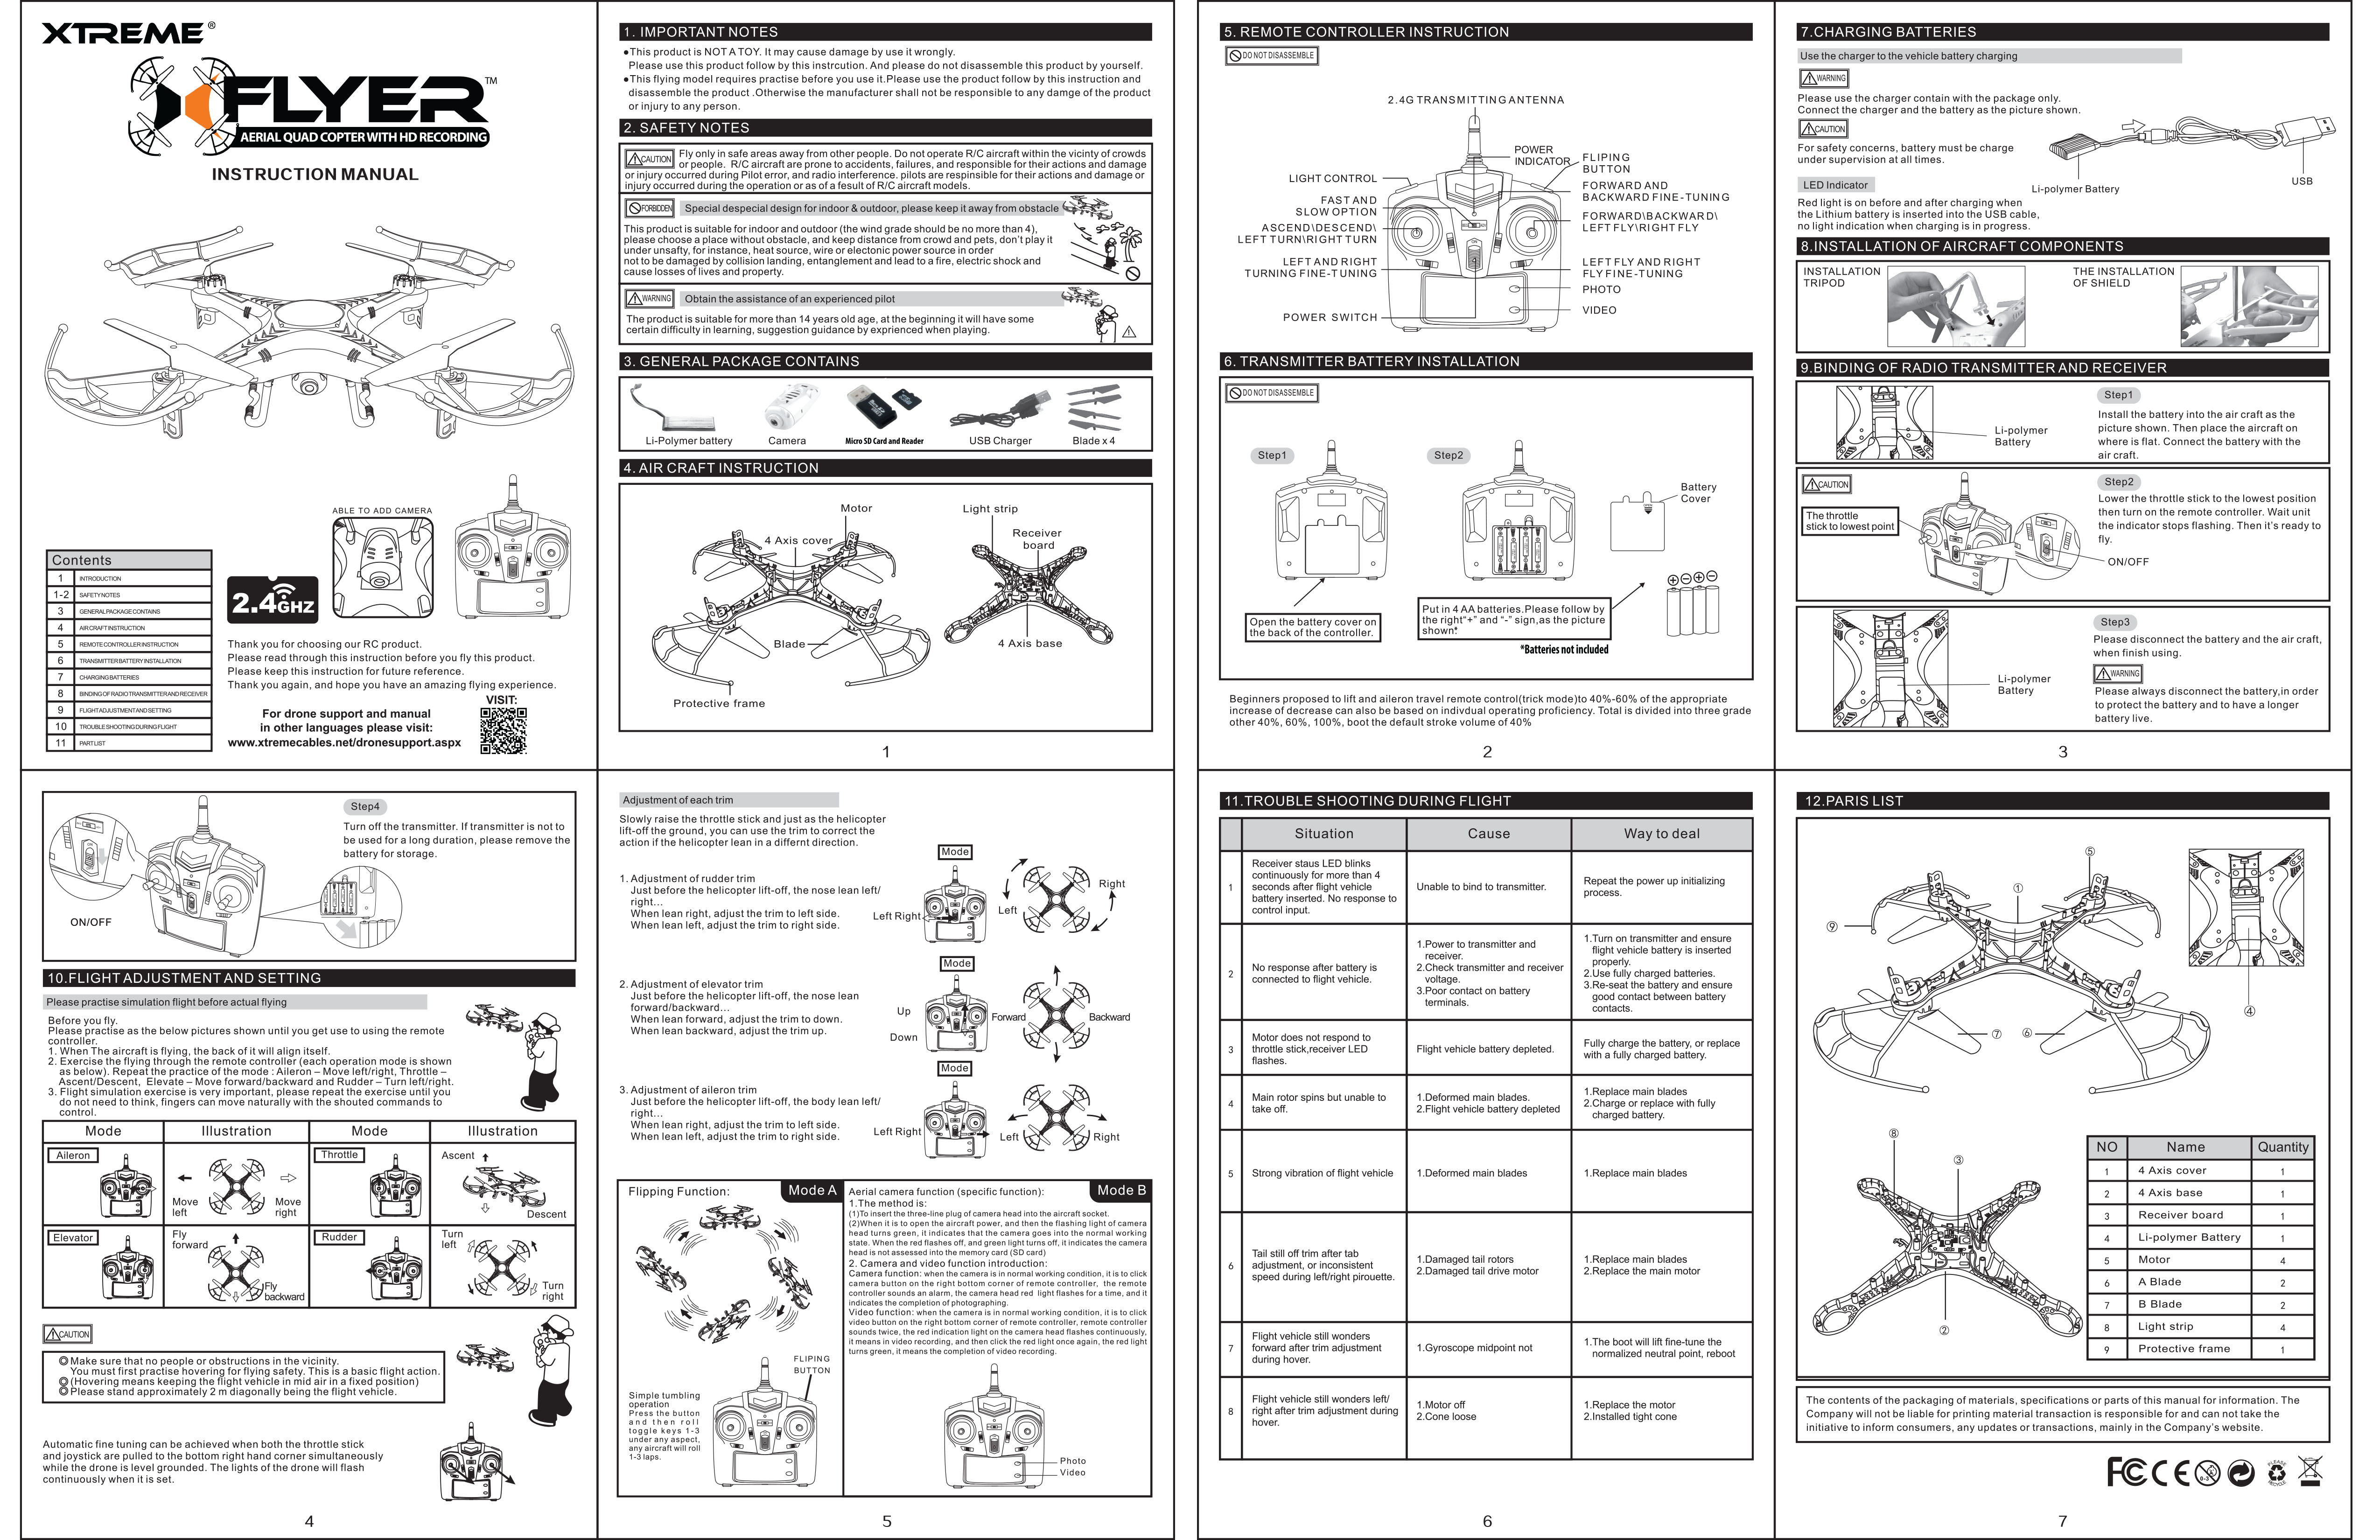 Image Result For X Drone Instructions